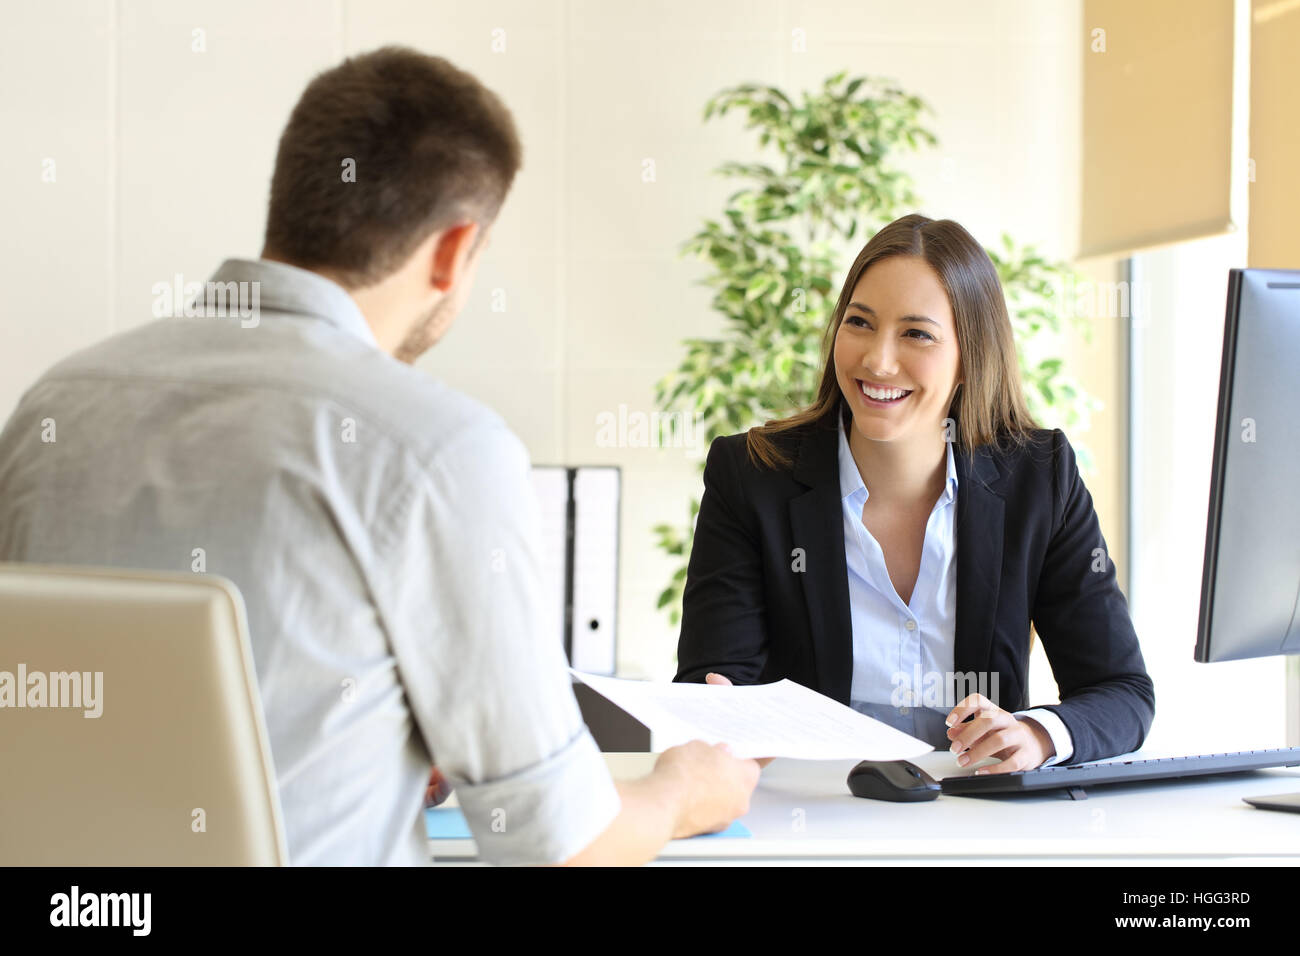 Guy giving a curriculum vitae to his interviewer in a job interview - Stock Image